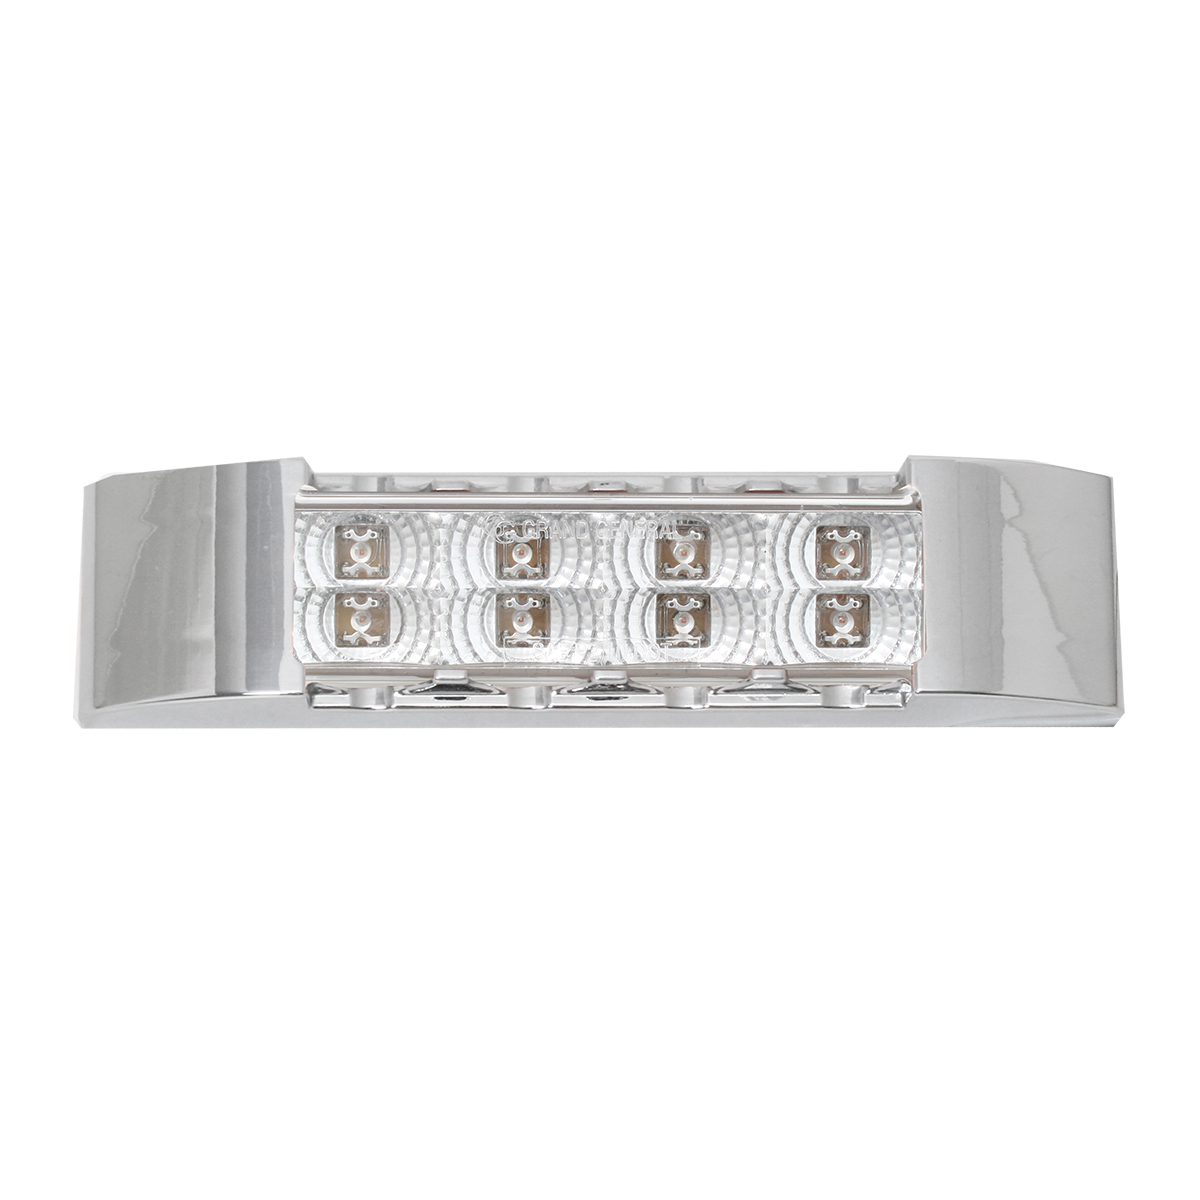 Slim Rectangular Spyder LED Light in Clear Lens with Chrome Plastic Bezel